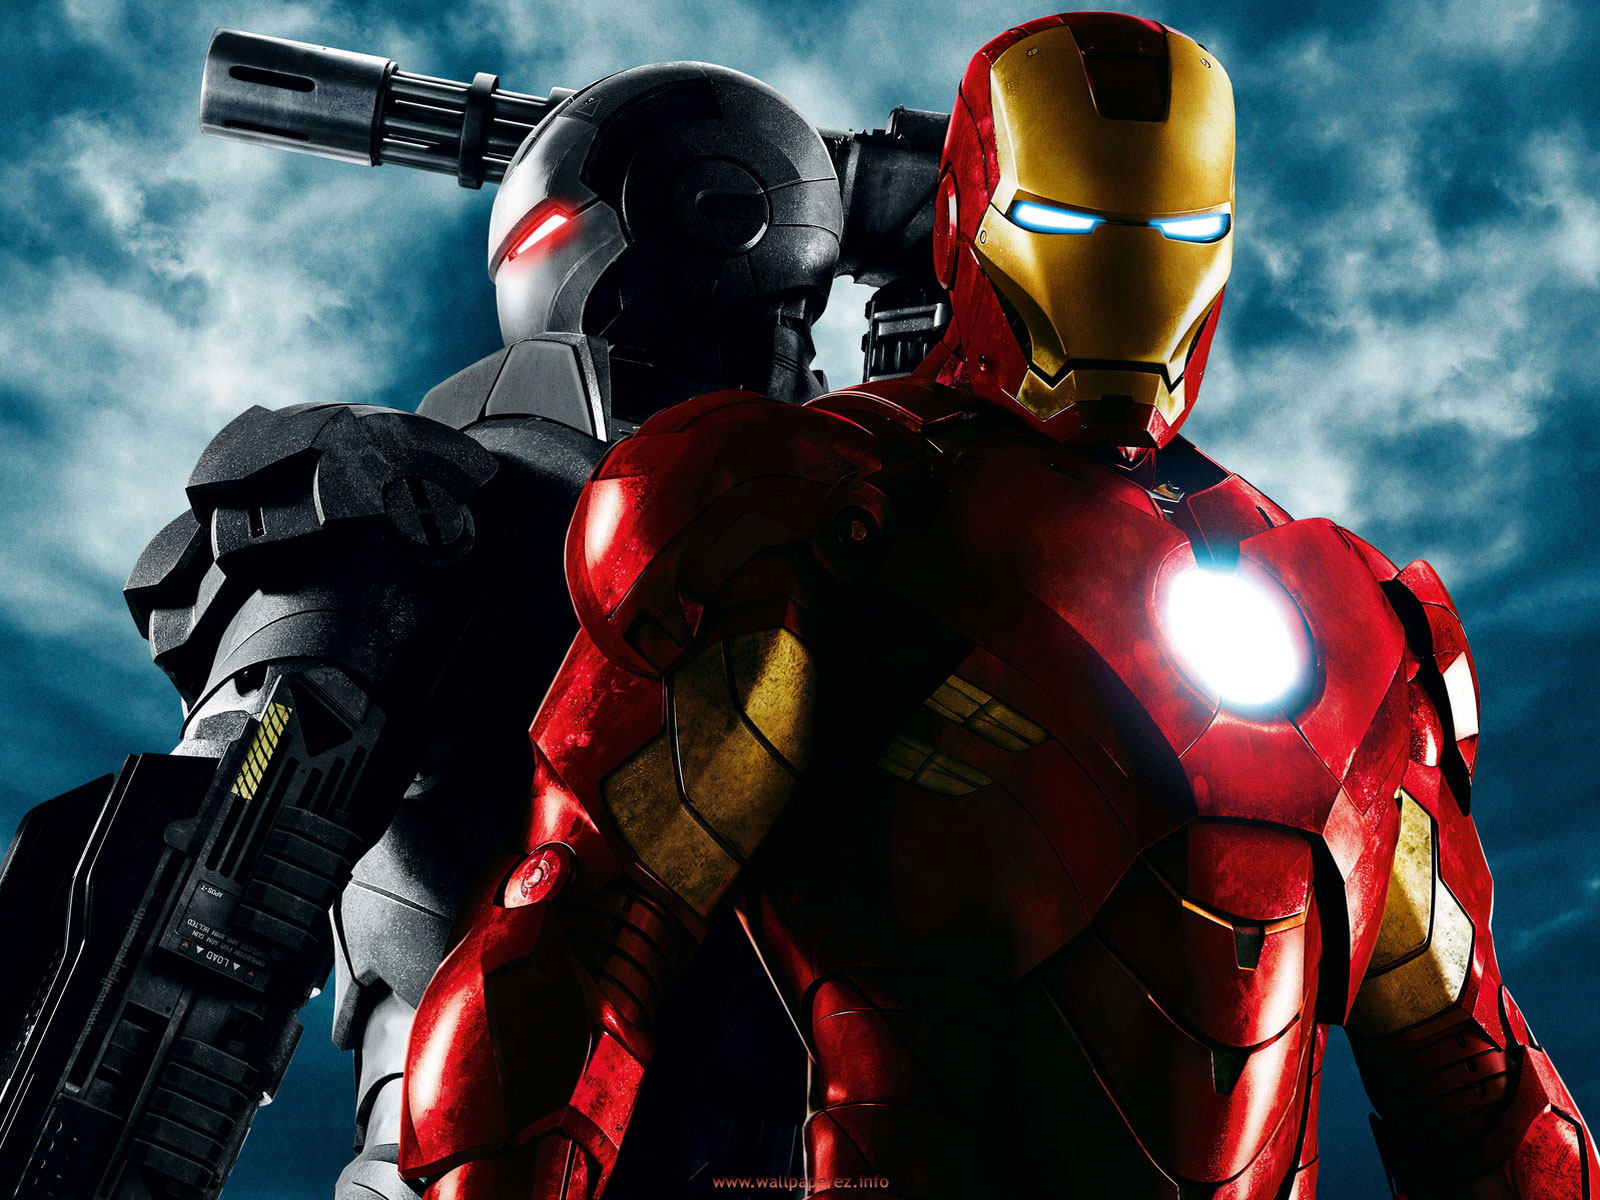 iron man wallpaper 3 iron man wallpaper 4 iron man wallpaper 5 1600x1200